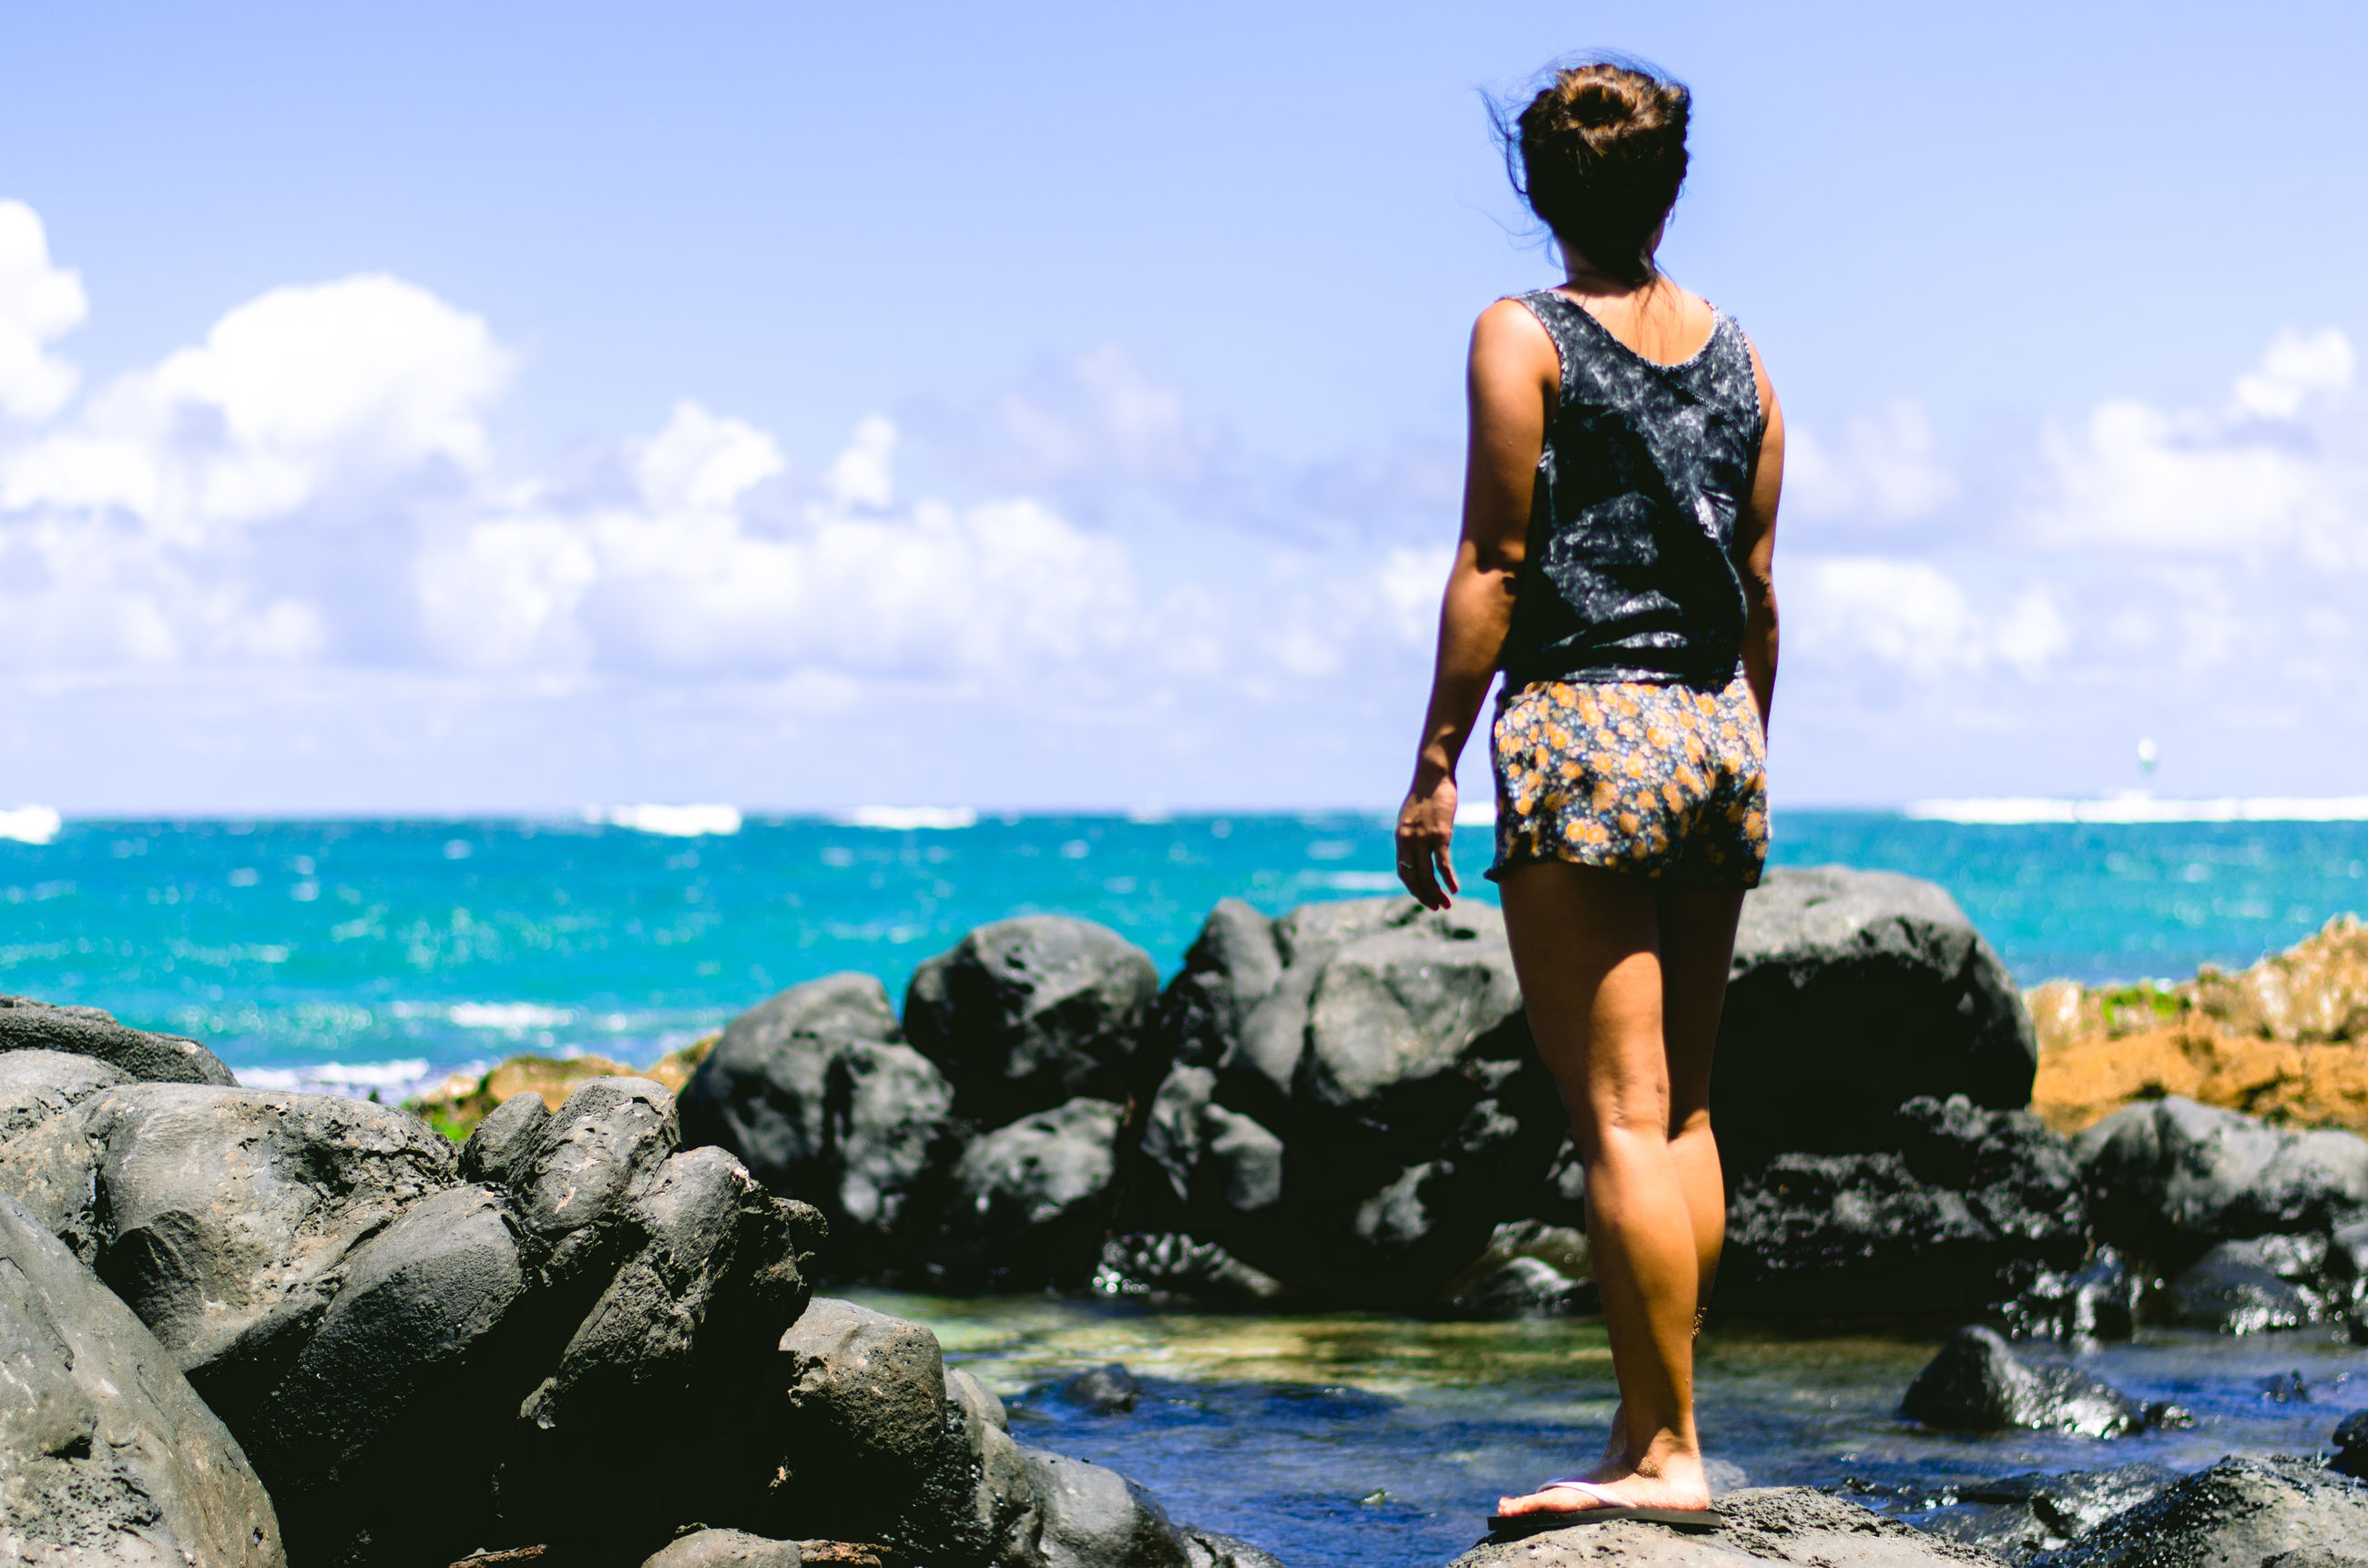 sea, water, sky, standing, horizon over water, lifestyles, full length, leisure activity, casual clothing, rock - object, beach, shore, rear view, scenics, beauty in nature, tranquility, tranquil scene, nature